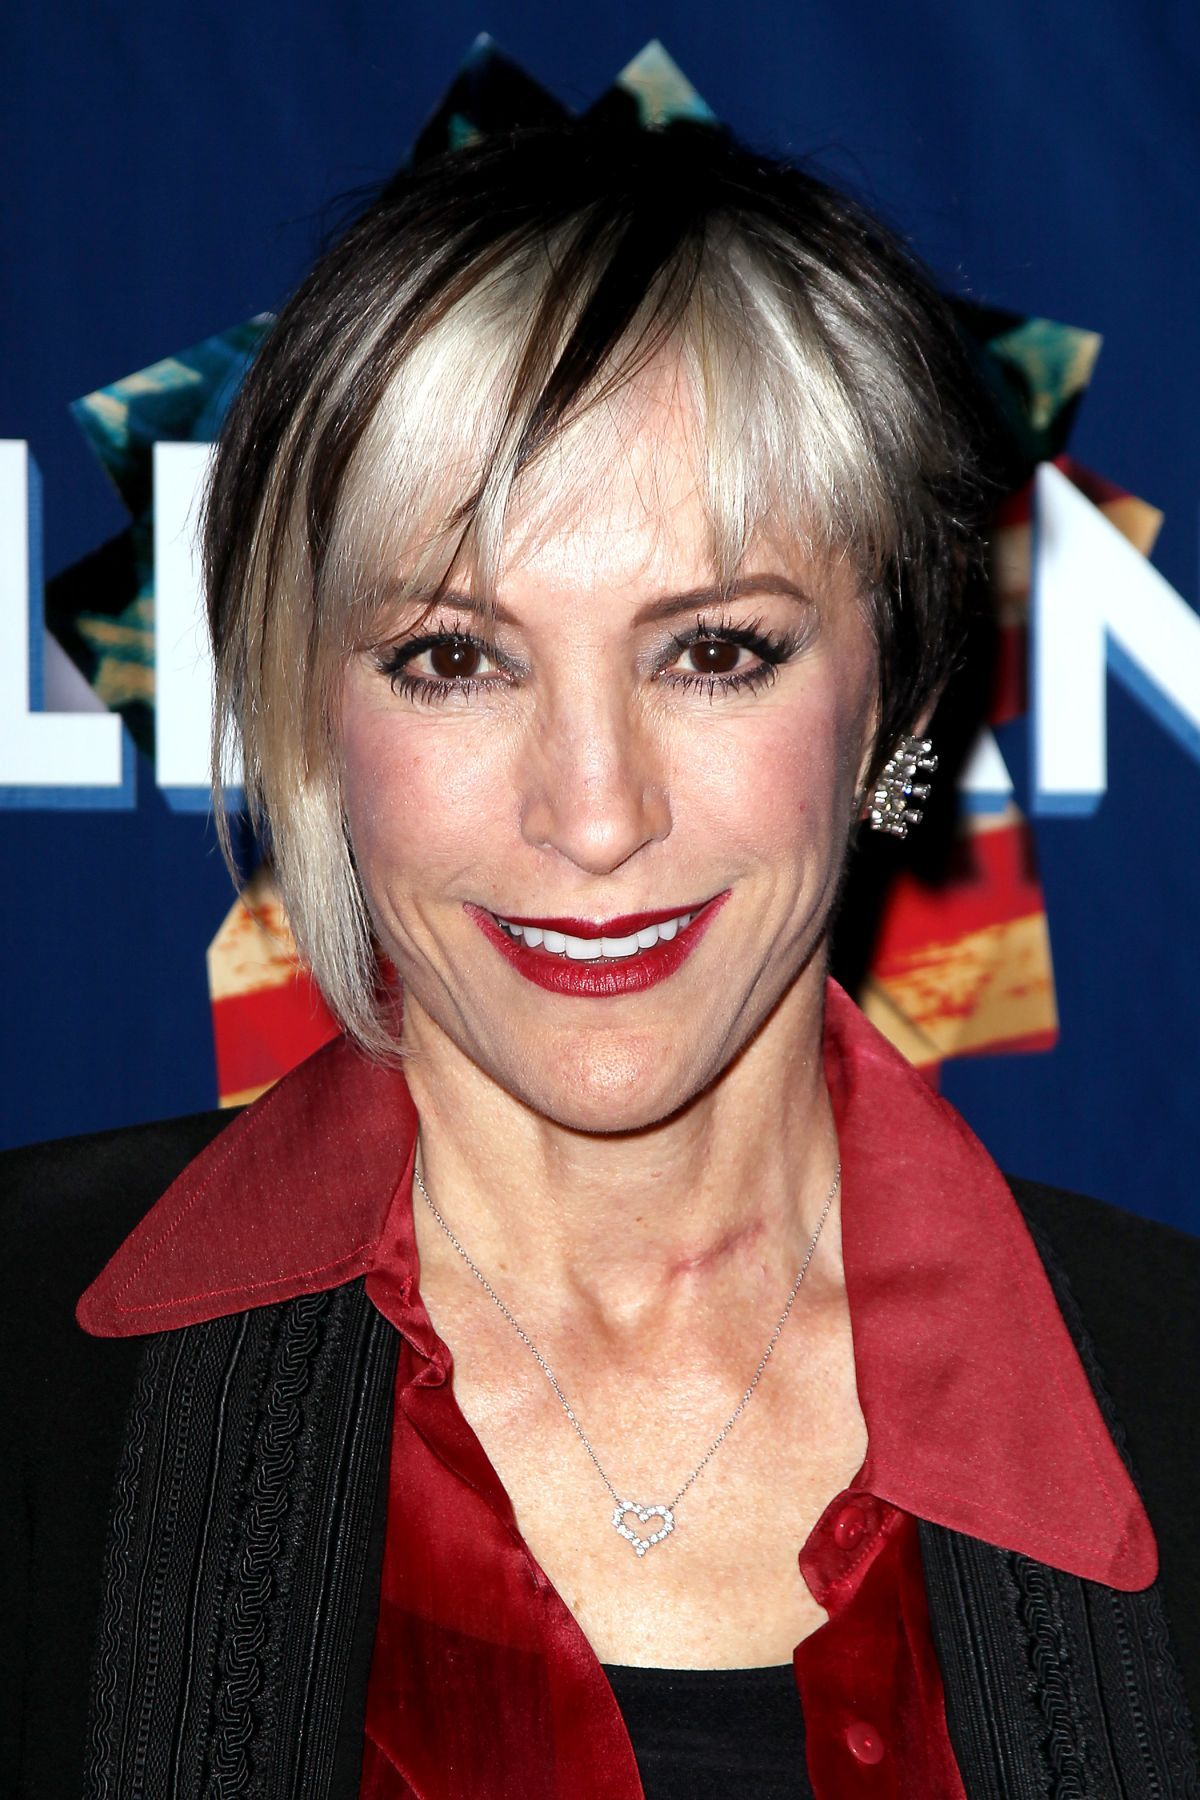 nana visitor 2015nana visitor family guy, nana visitor imdb, nana visitor actress, nana visitor photo gallery, nana visitor, nana visitor alexander siddig, nana visitor castle, nana visitor wikipedia, nana visitor 2015, nana visitor feet, nana visitor hot, nana visitor son, nana visitor battlestar galactica, nana visitor twitter, nana visitor ted 2, nana visitor net worth, nana visitor measurements, nana visitor grease, nana visitor fakes